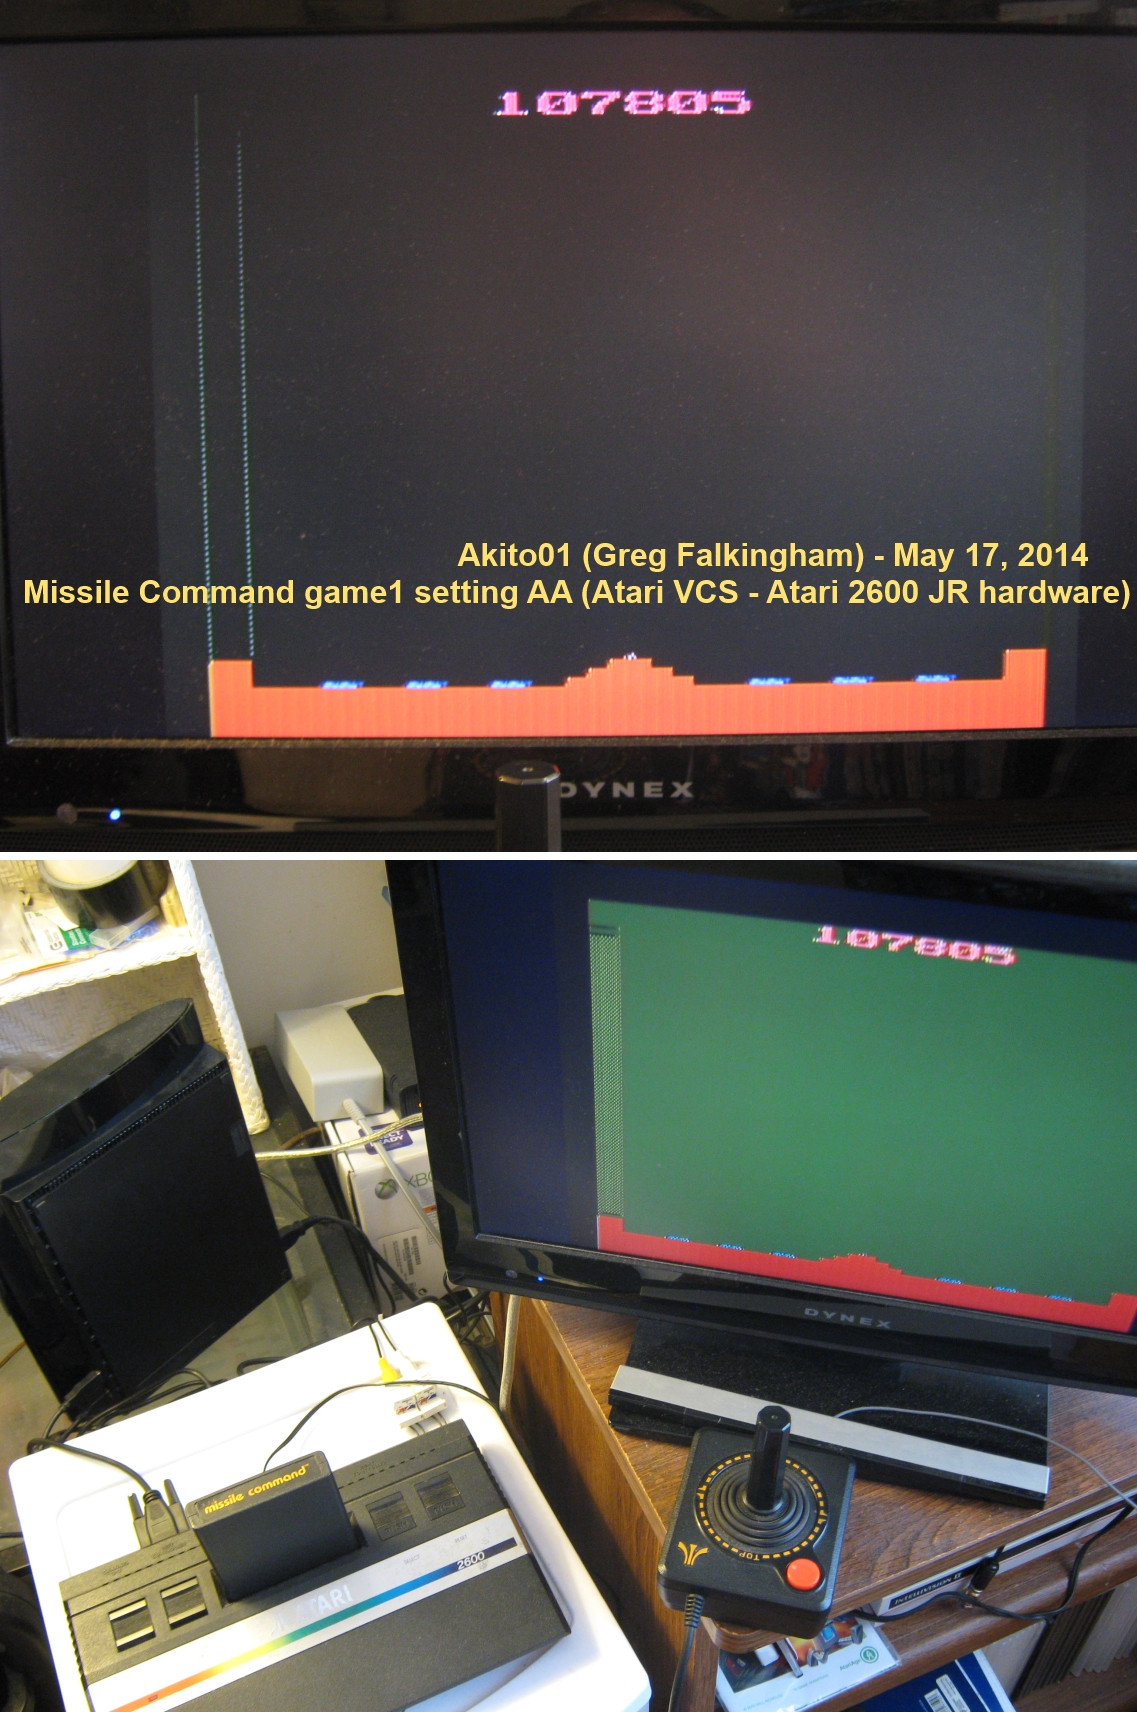 Akito01: Missile Command (Atari 2600 Expert/A) 107,805 points on 2014-05-17 12:19:21